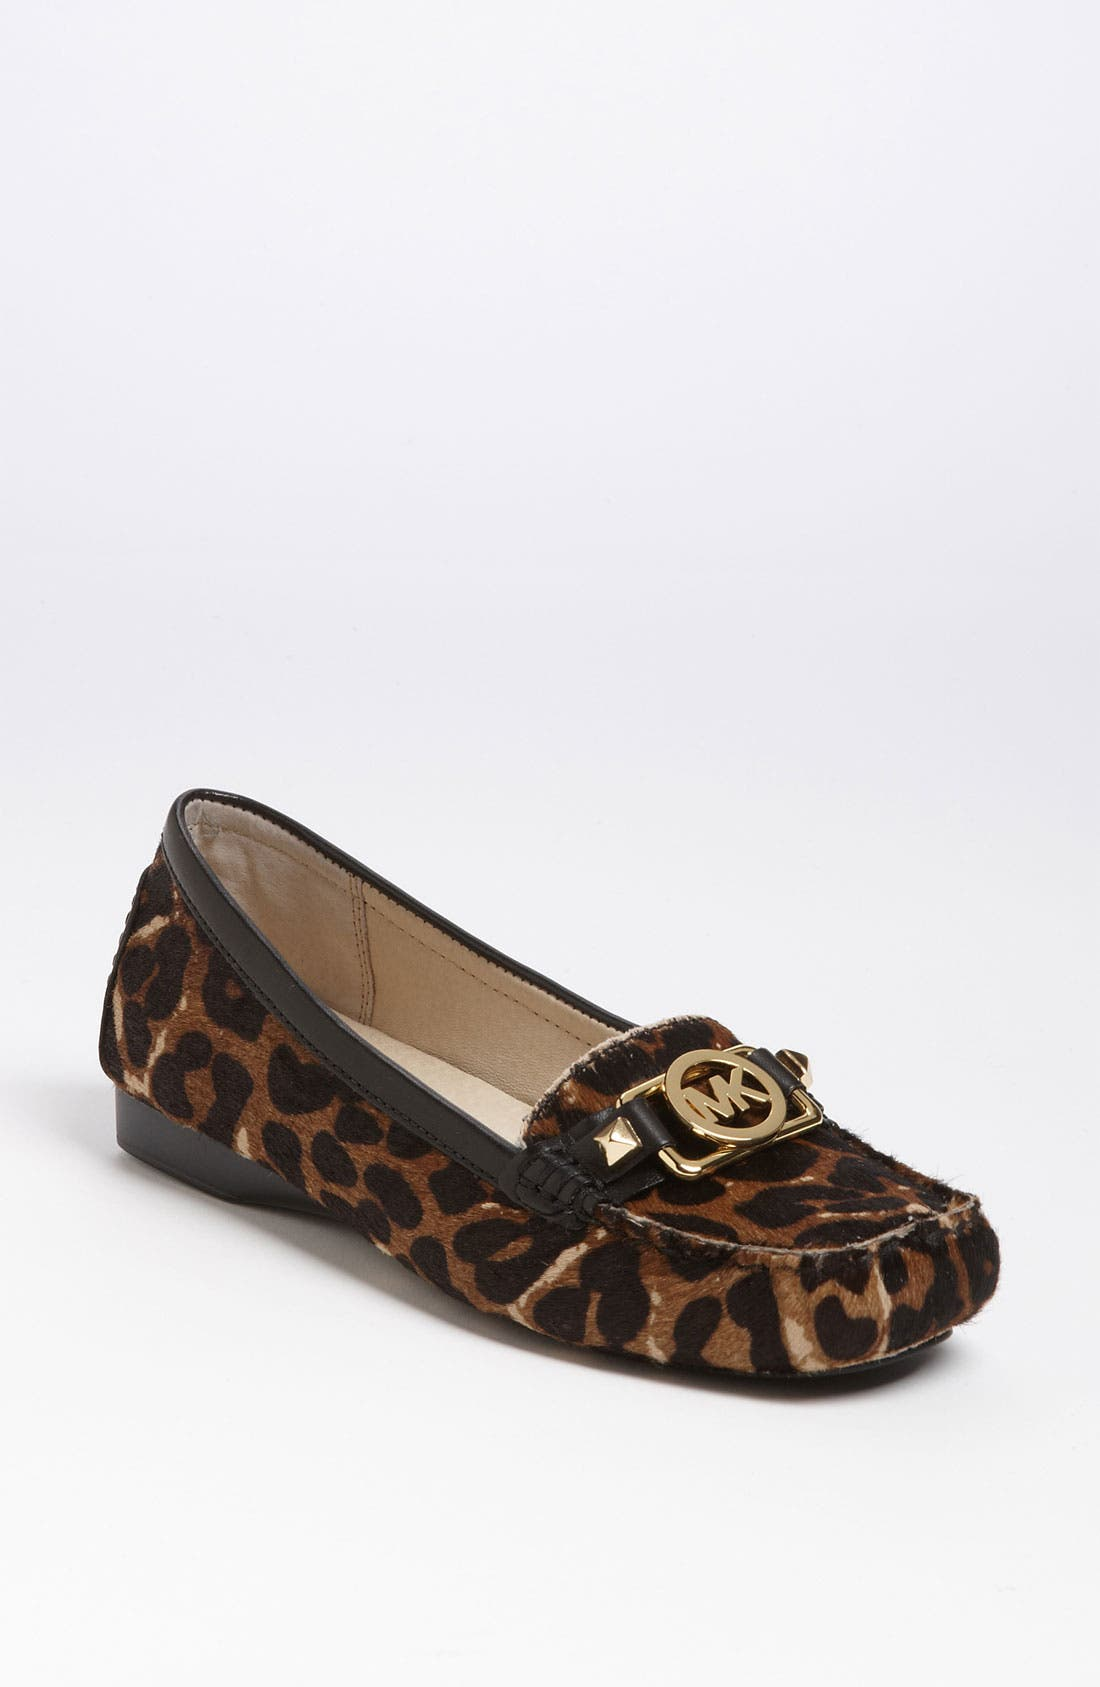 MICHAEL MICHAEL KORS,                             'Charm' Moccasin,                             Main thumbnail 1, color,                             200